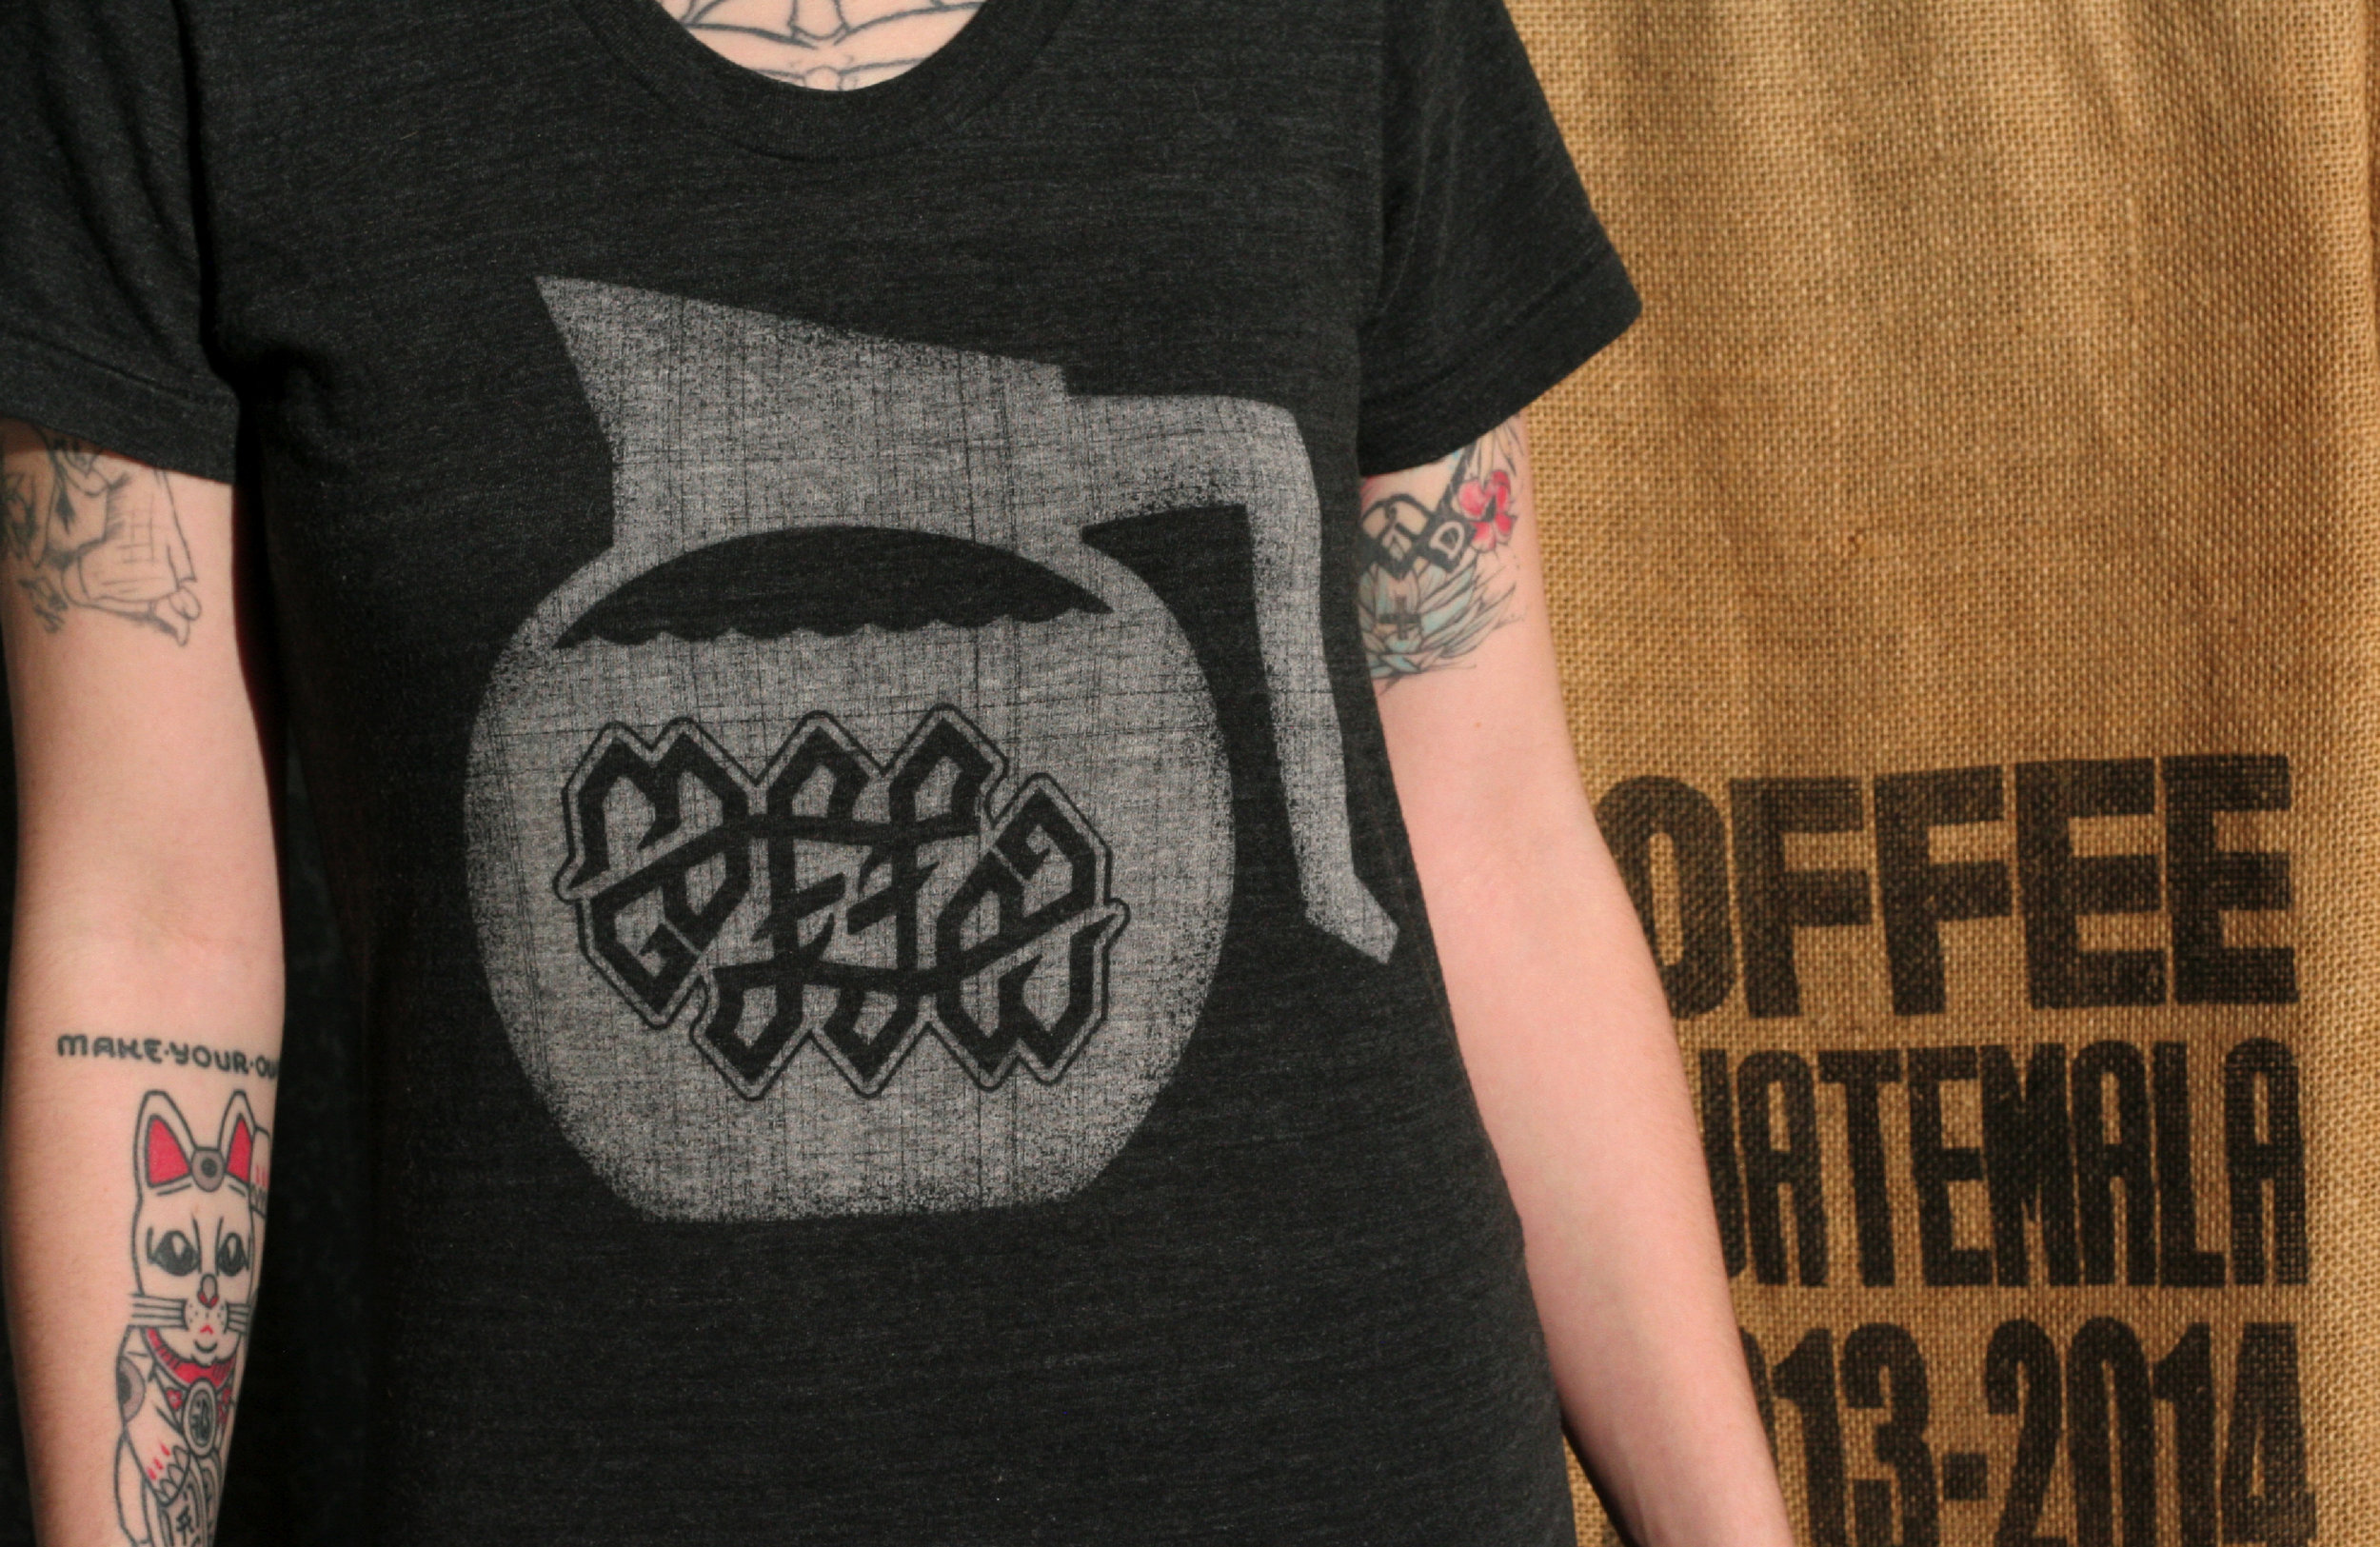 Coffee ambigram symbol was designed by Neuer Geist for Cotton Bureau. The design earned enough pledges to be produced and sold.